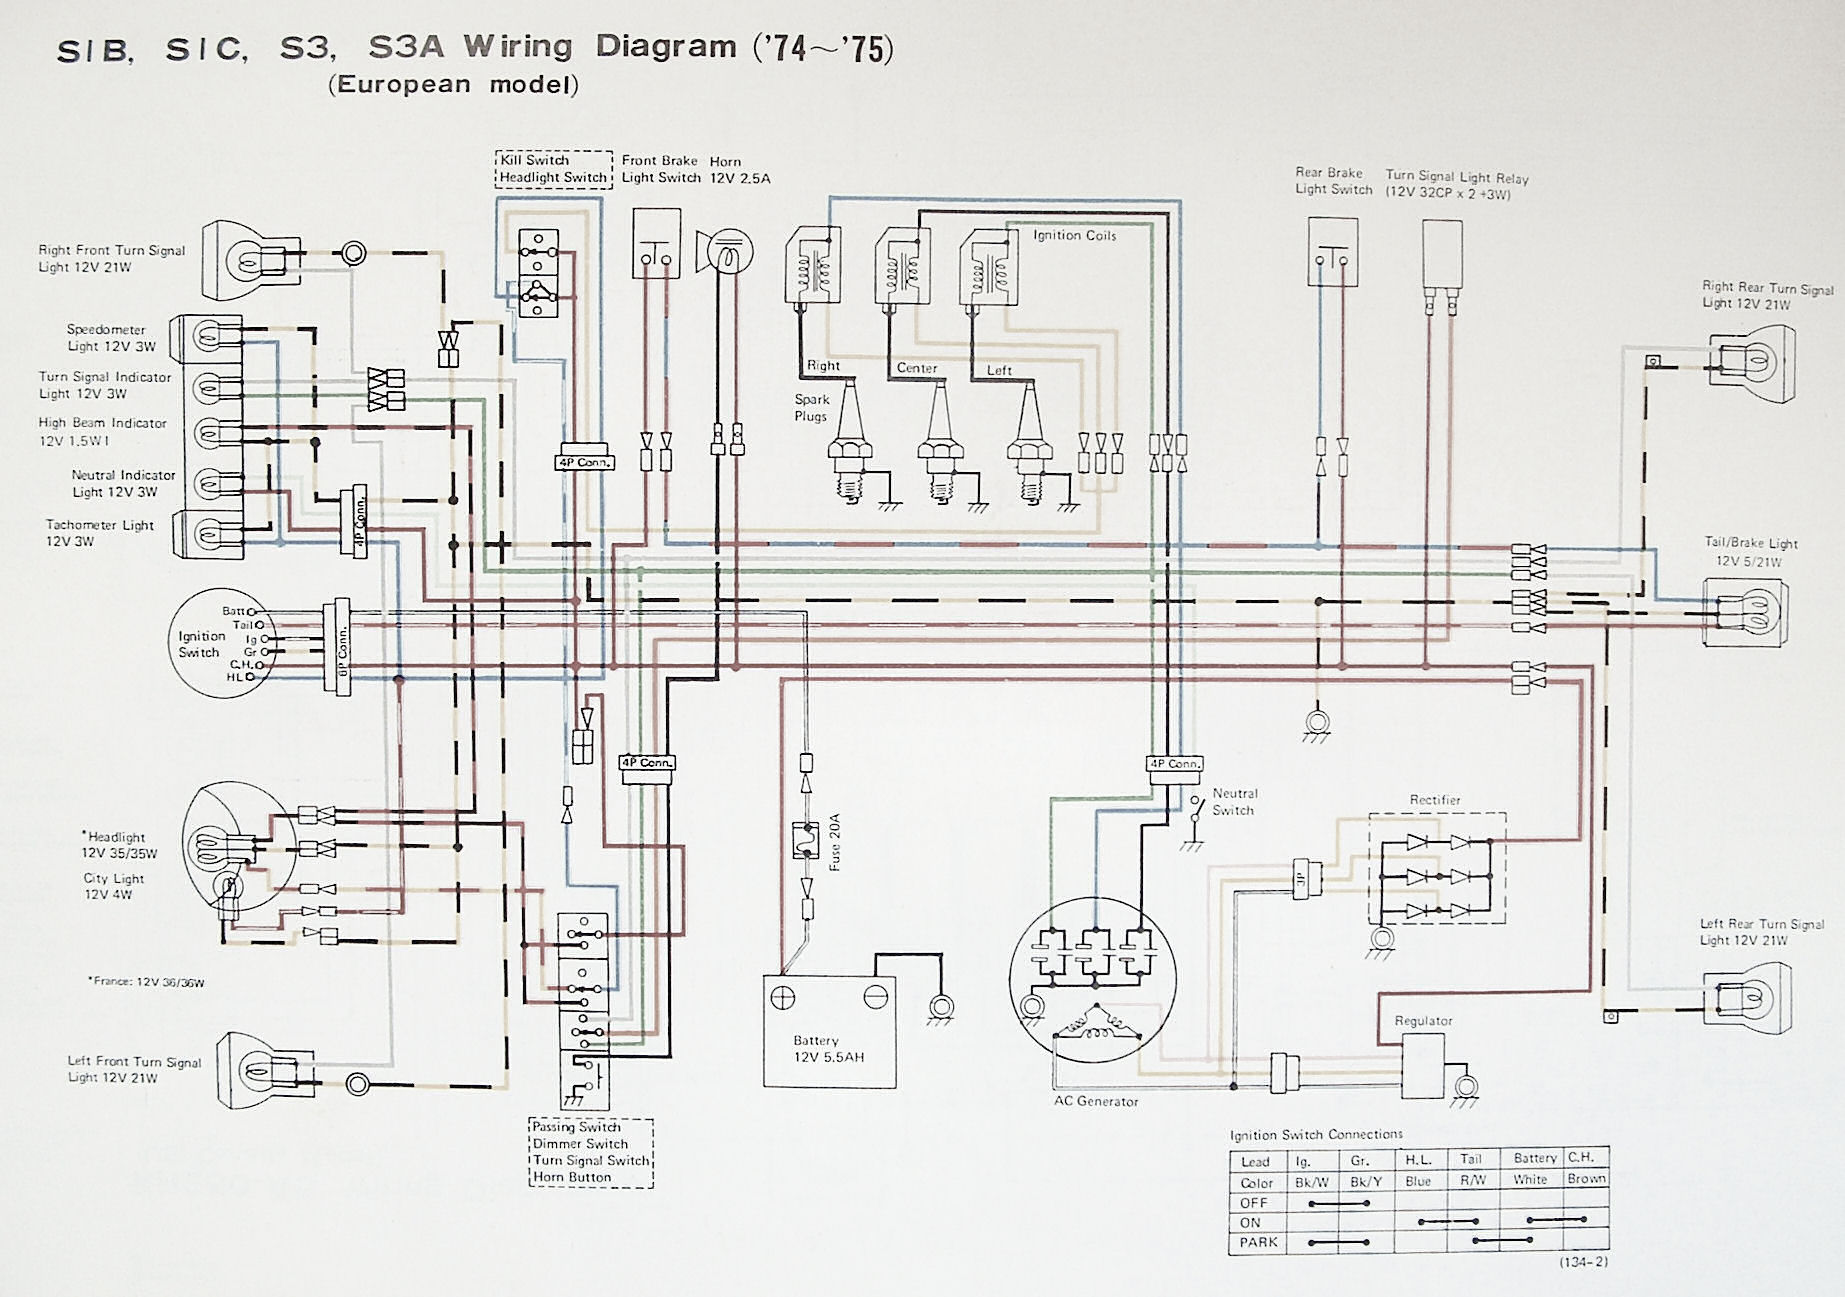 klf 300 wiring diagram for ramsey winch 1991 kawasaki bayou